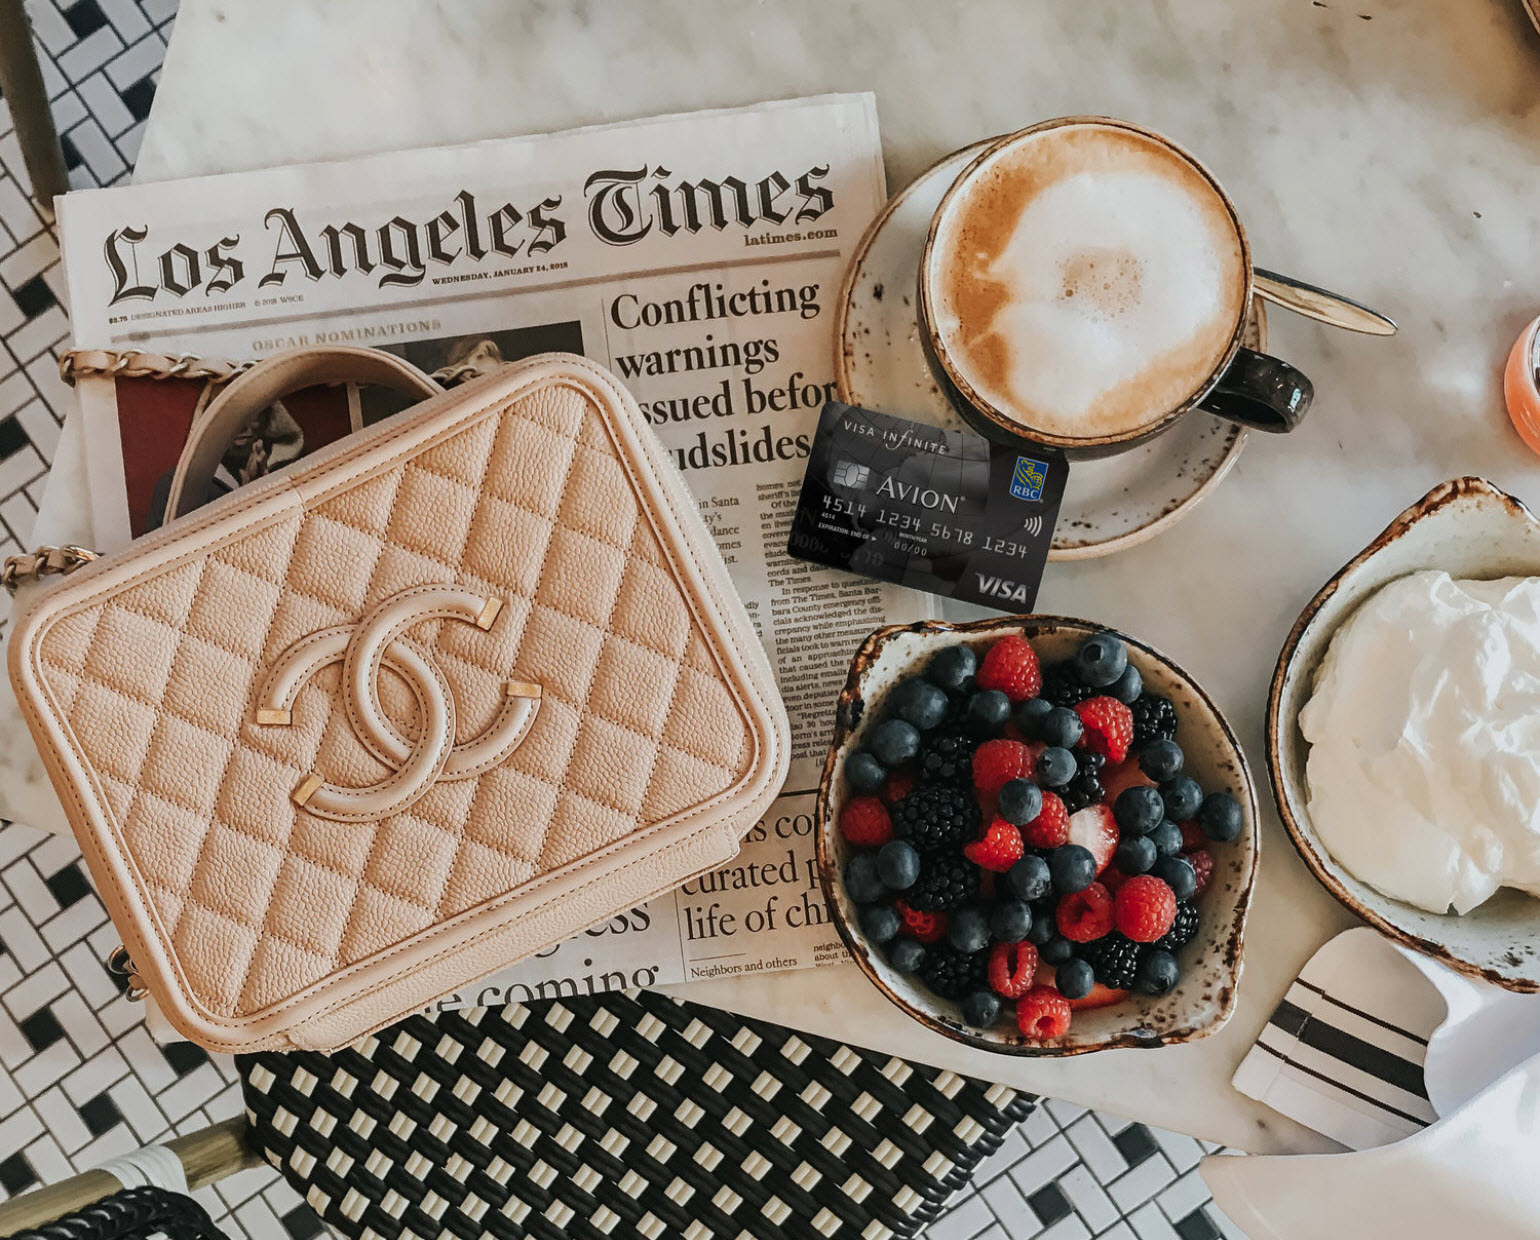 A bird's eye view of breakfast and a coffee on the table with an Avion credit card, LA Times Newspaper and purse.